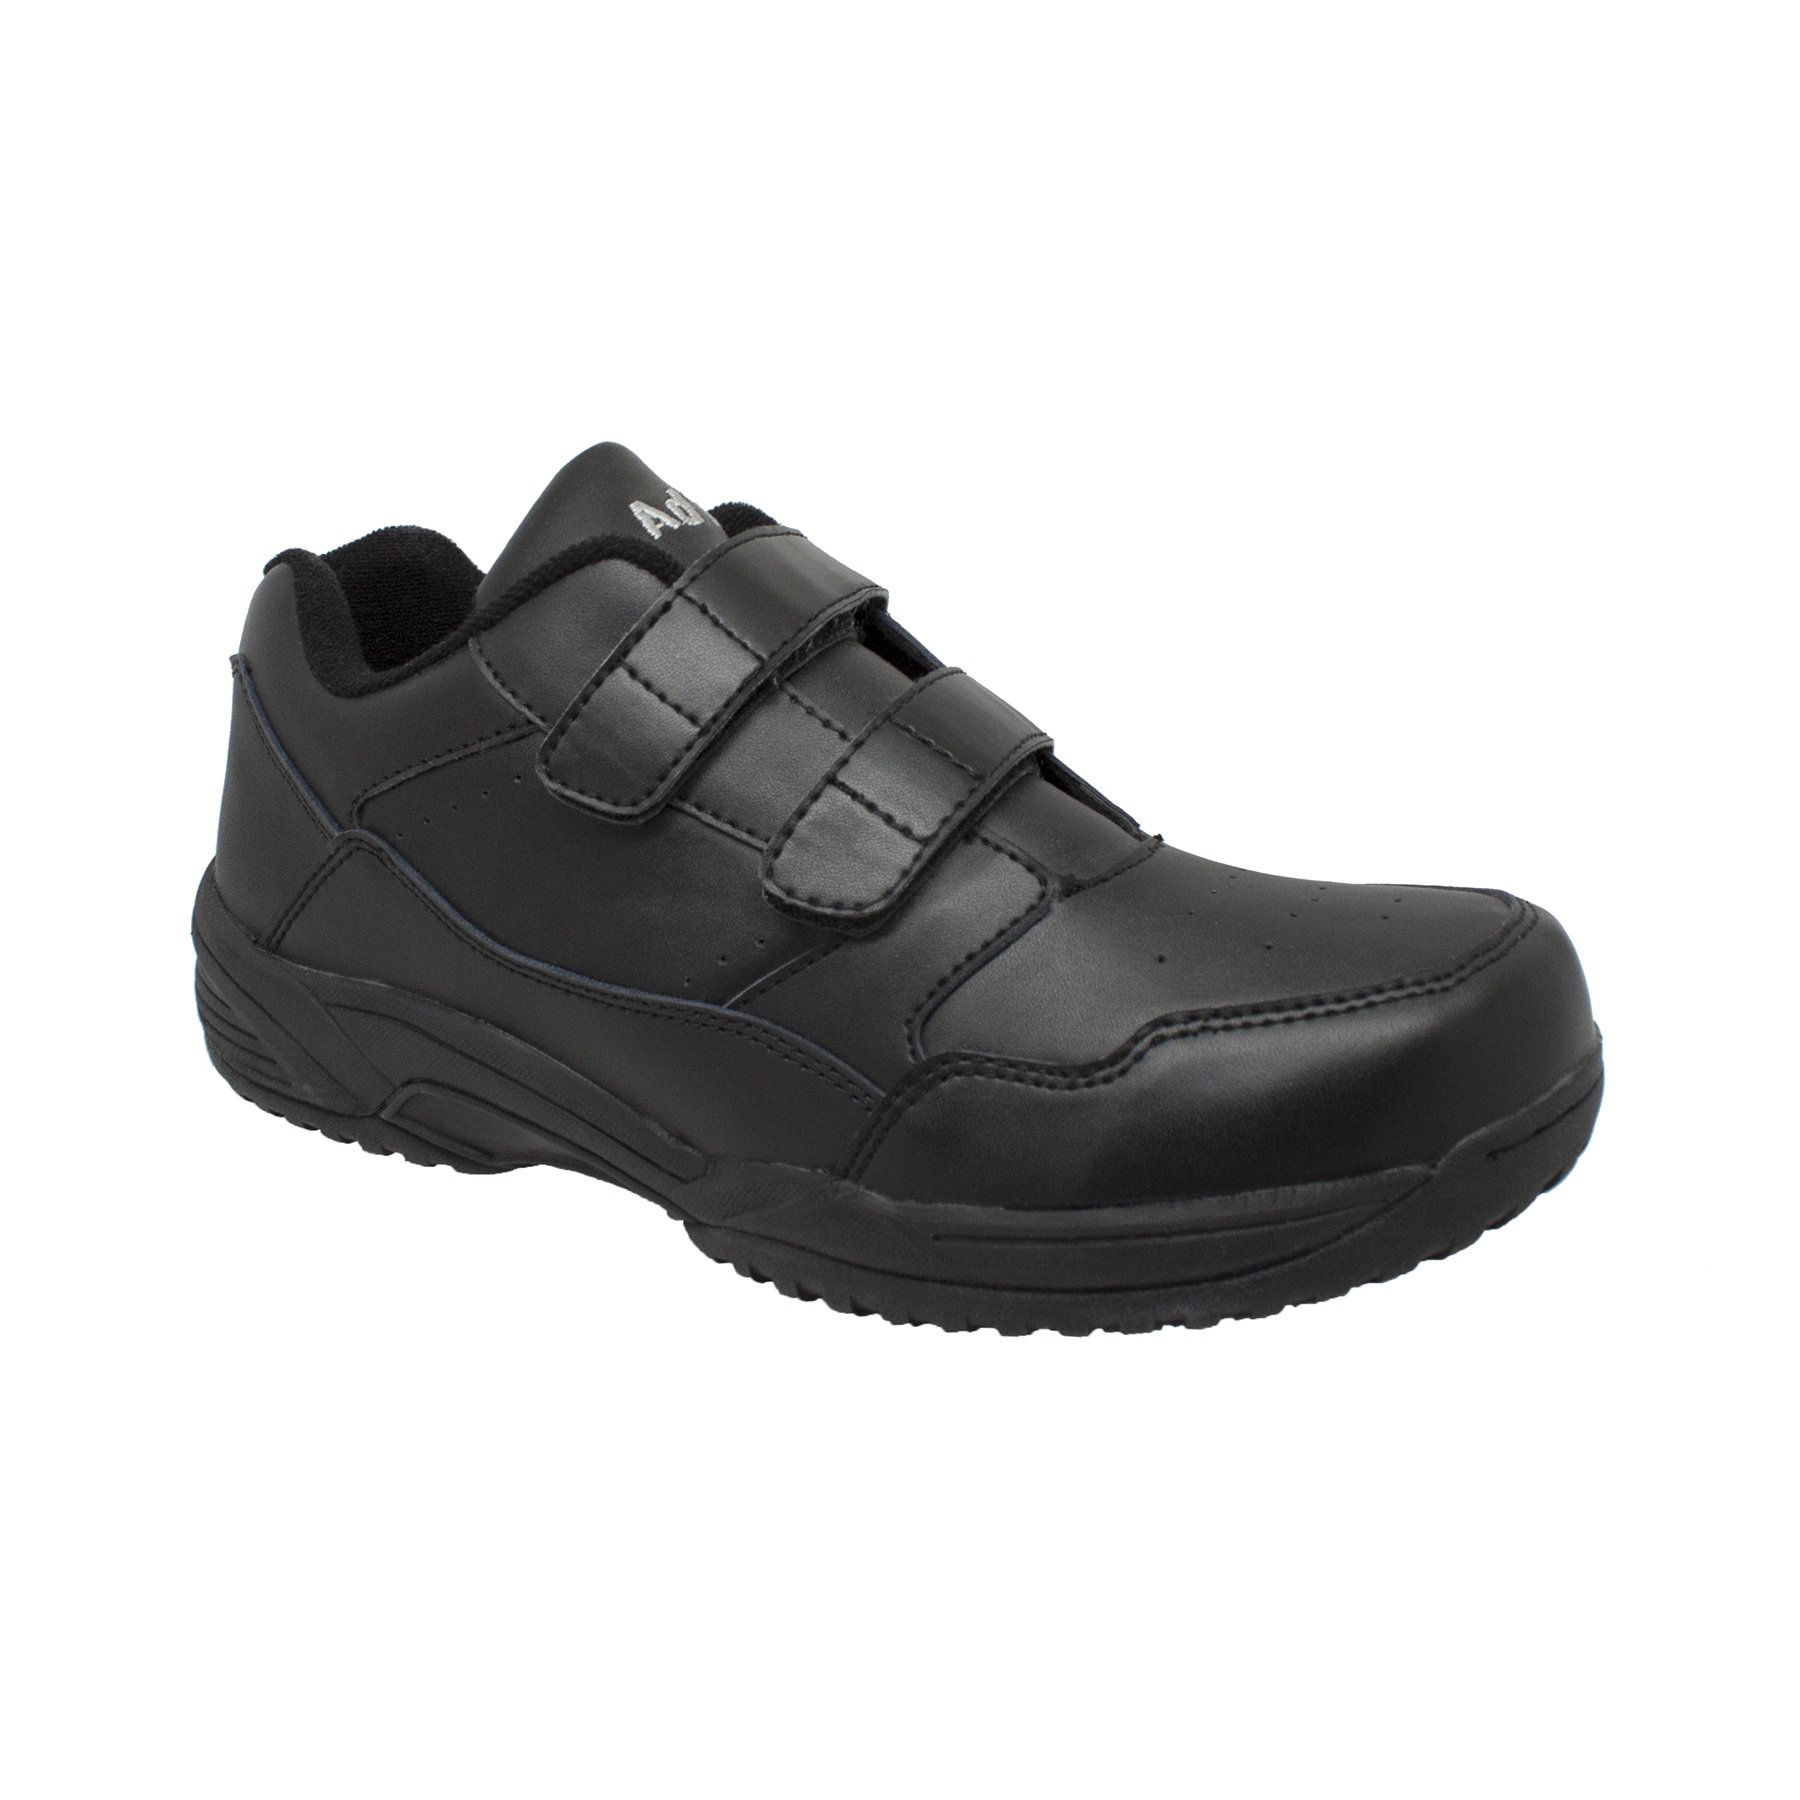 AdTec Black Slip-Resistant Shoes by Adtec